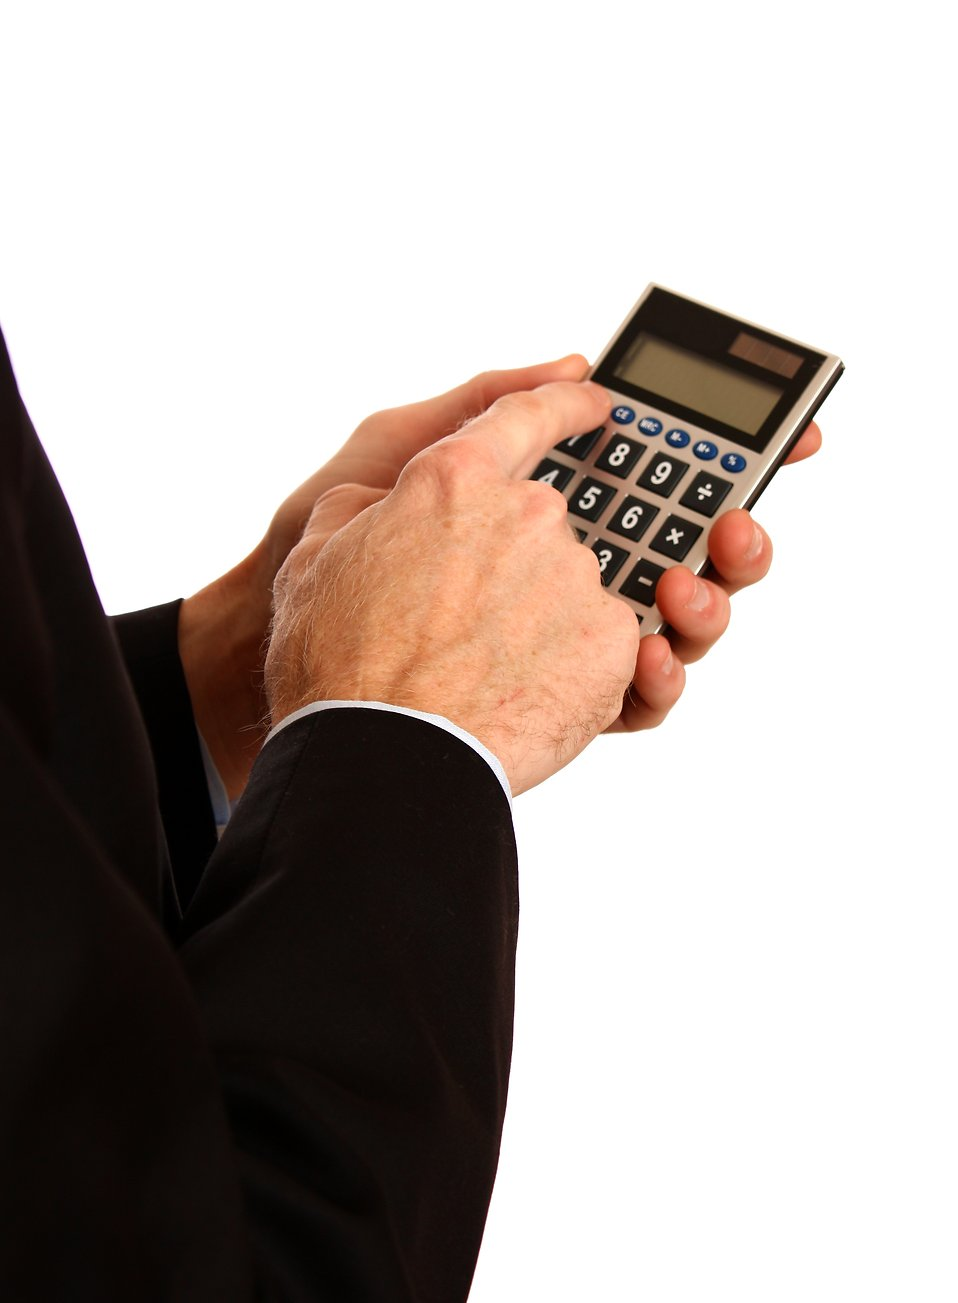 A young businessman in a suit using a calculator.